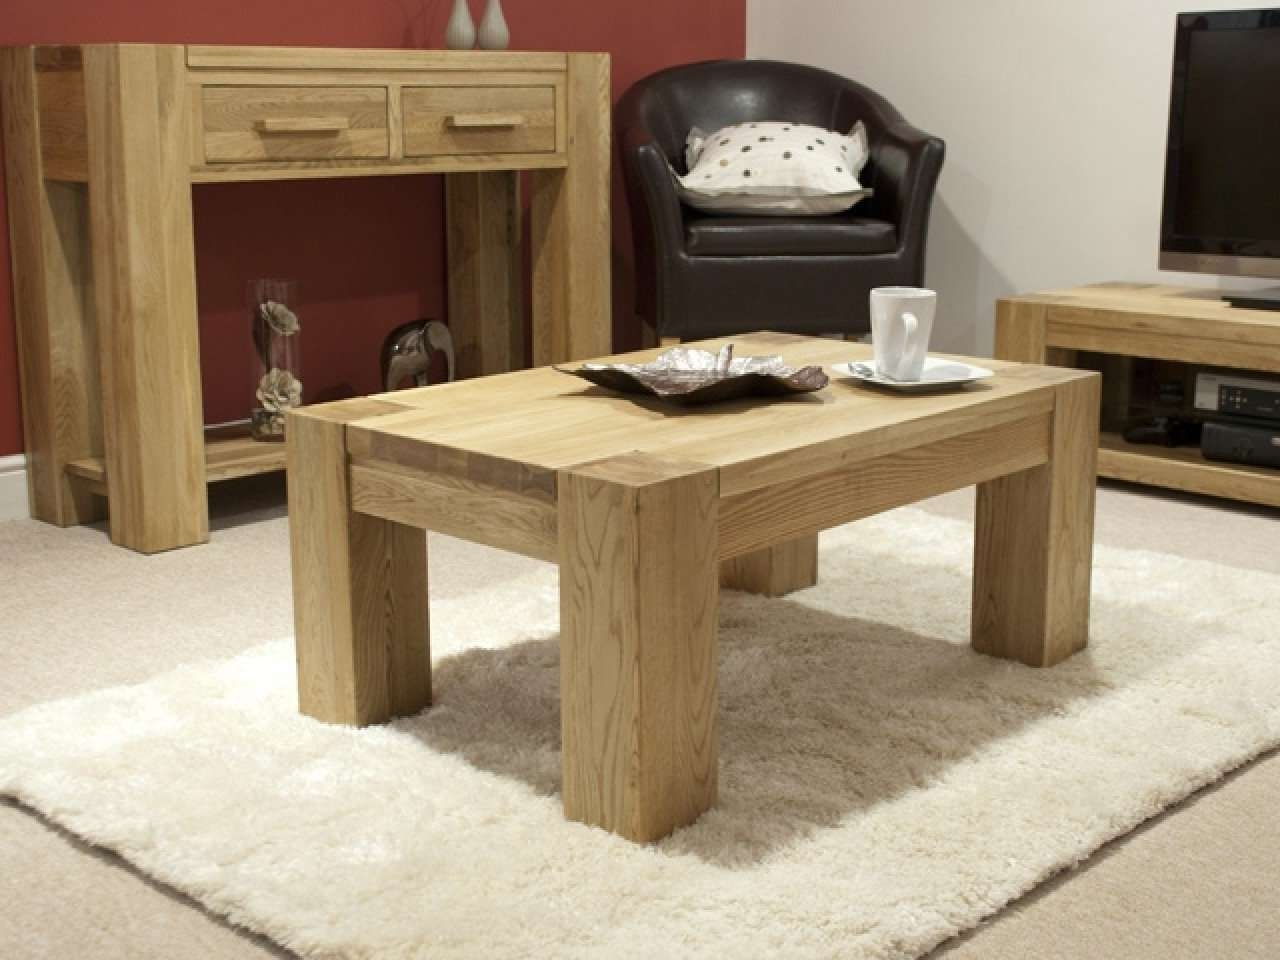 Oak Coffee Tables Trend Small Oak Coffee Table Oak City Intended Inside Trendy Small Oak Coffee Tables (View 10 of 20)